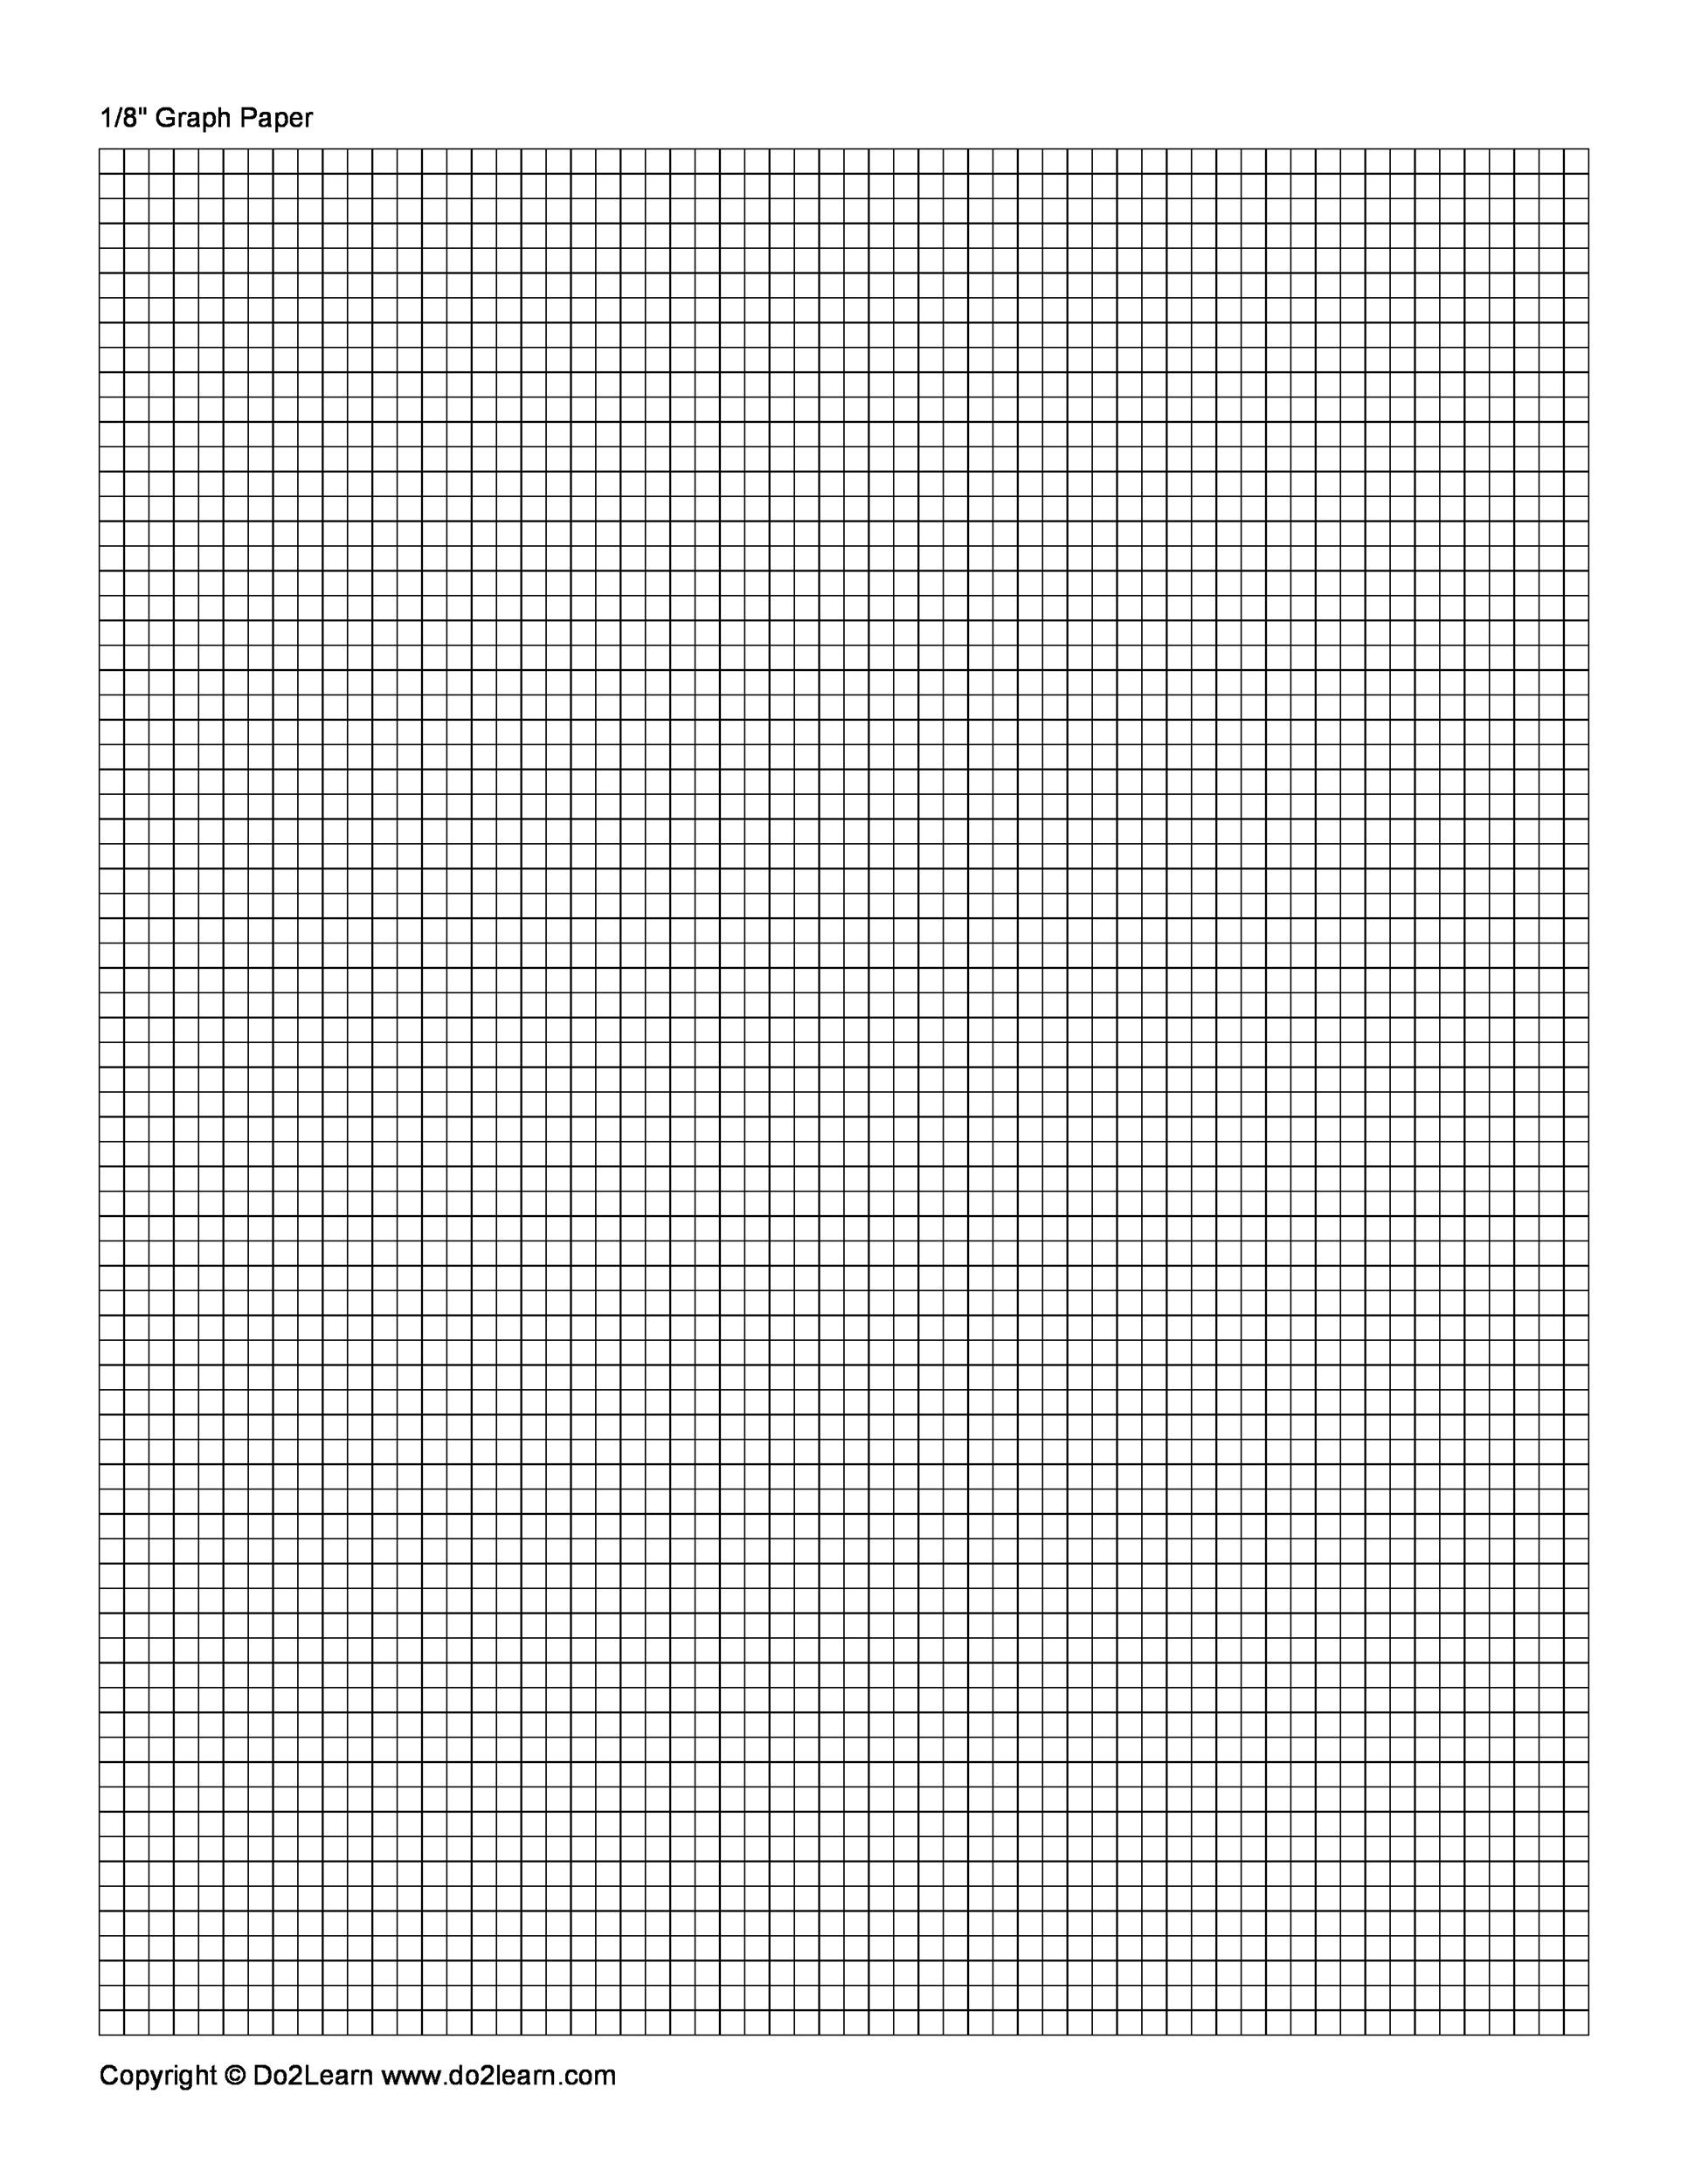 worksheet Graph Paper Free 30 free printable graph paper templates word pdf template lab 01